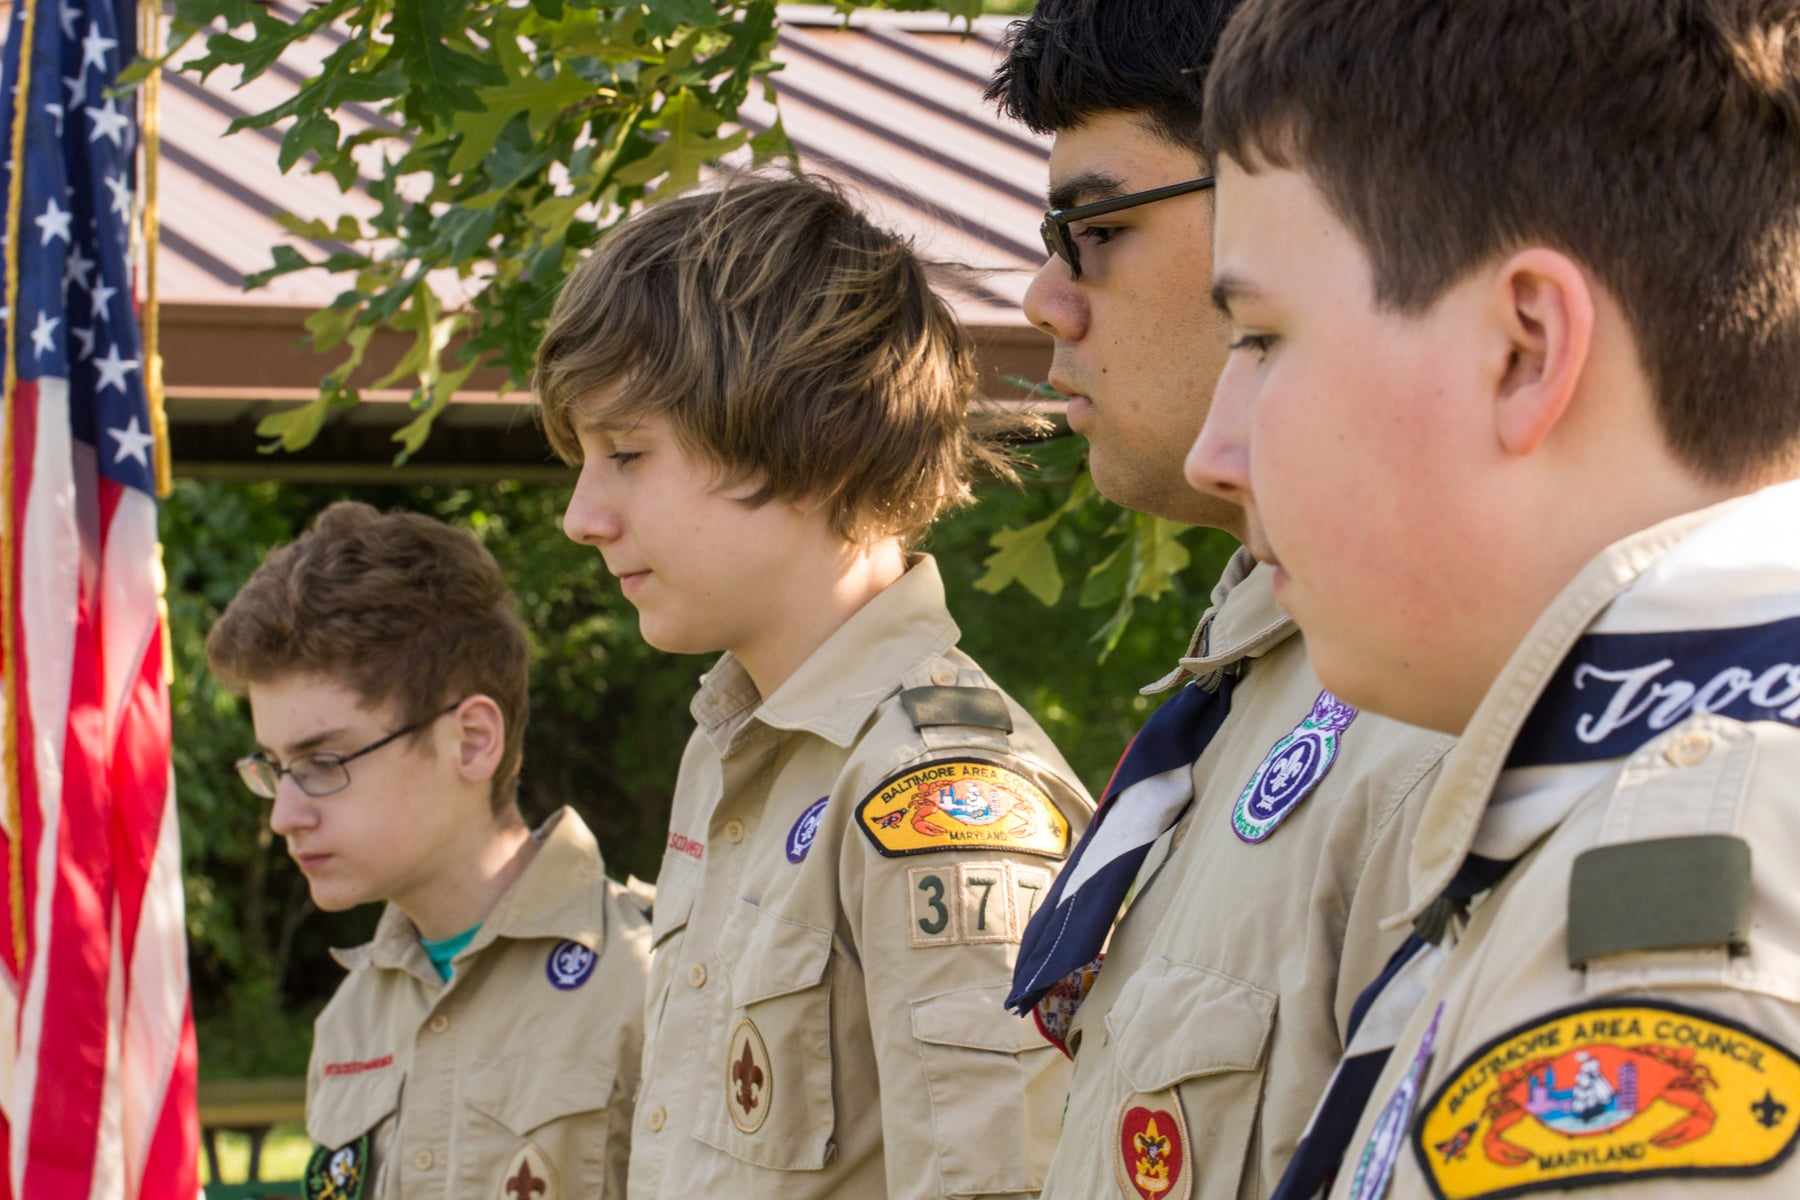 Boy Scouts Announce They Will Accept Girls